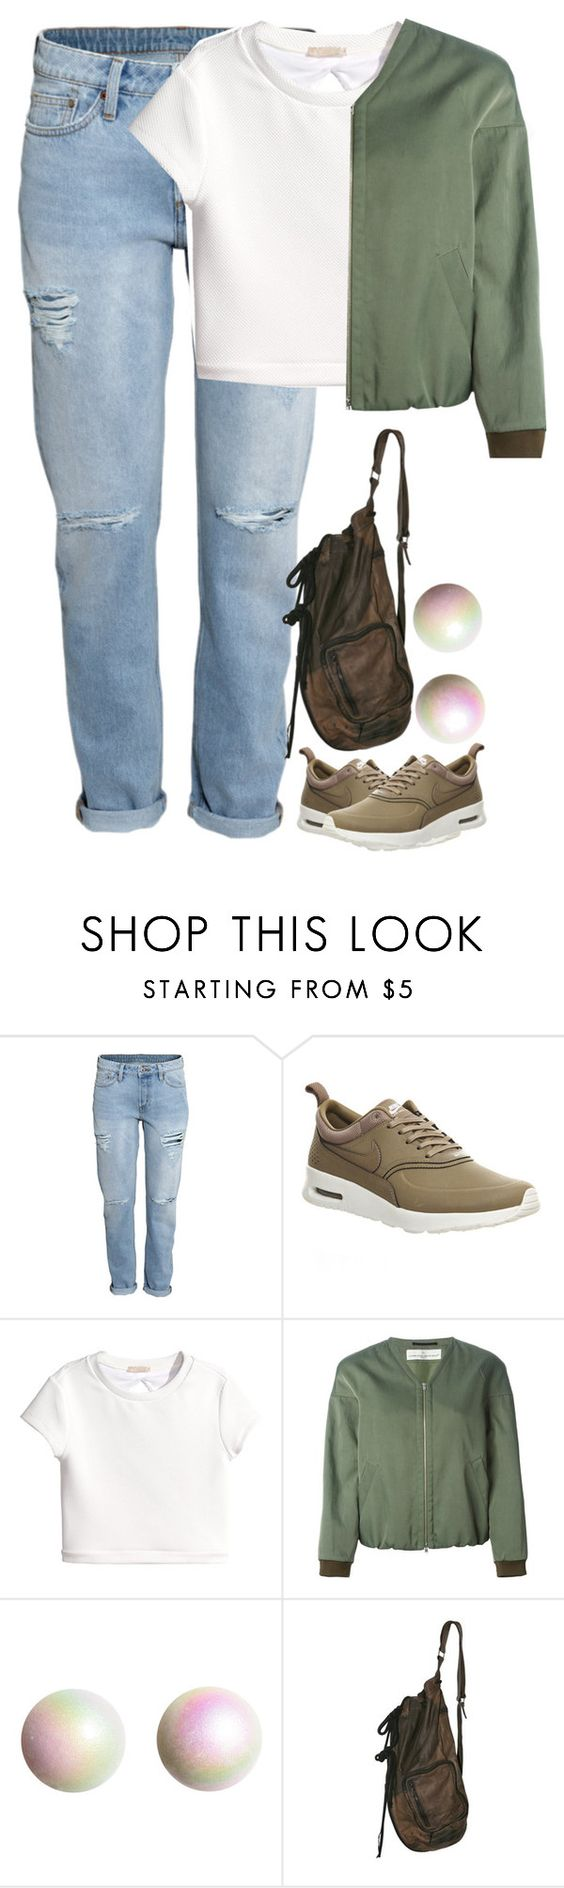 """Untitled #209"" by pastpresentfuture-indiasgem ❤ liked on Polyvore featuring H&M, NIKE and Golden Goose"